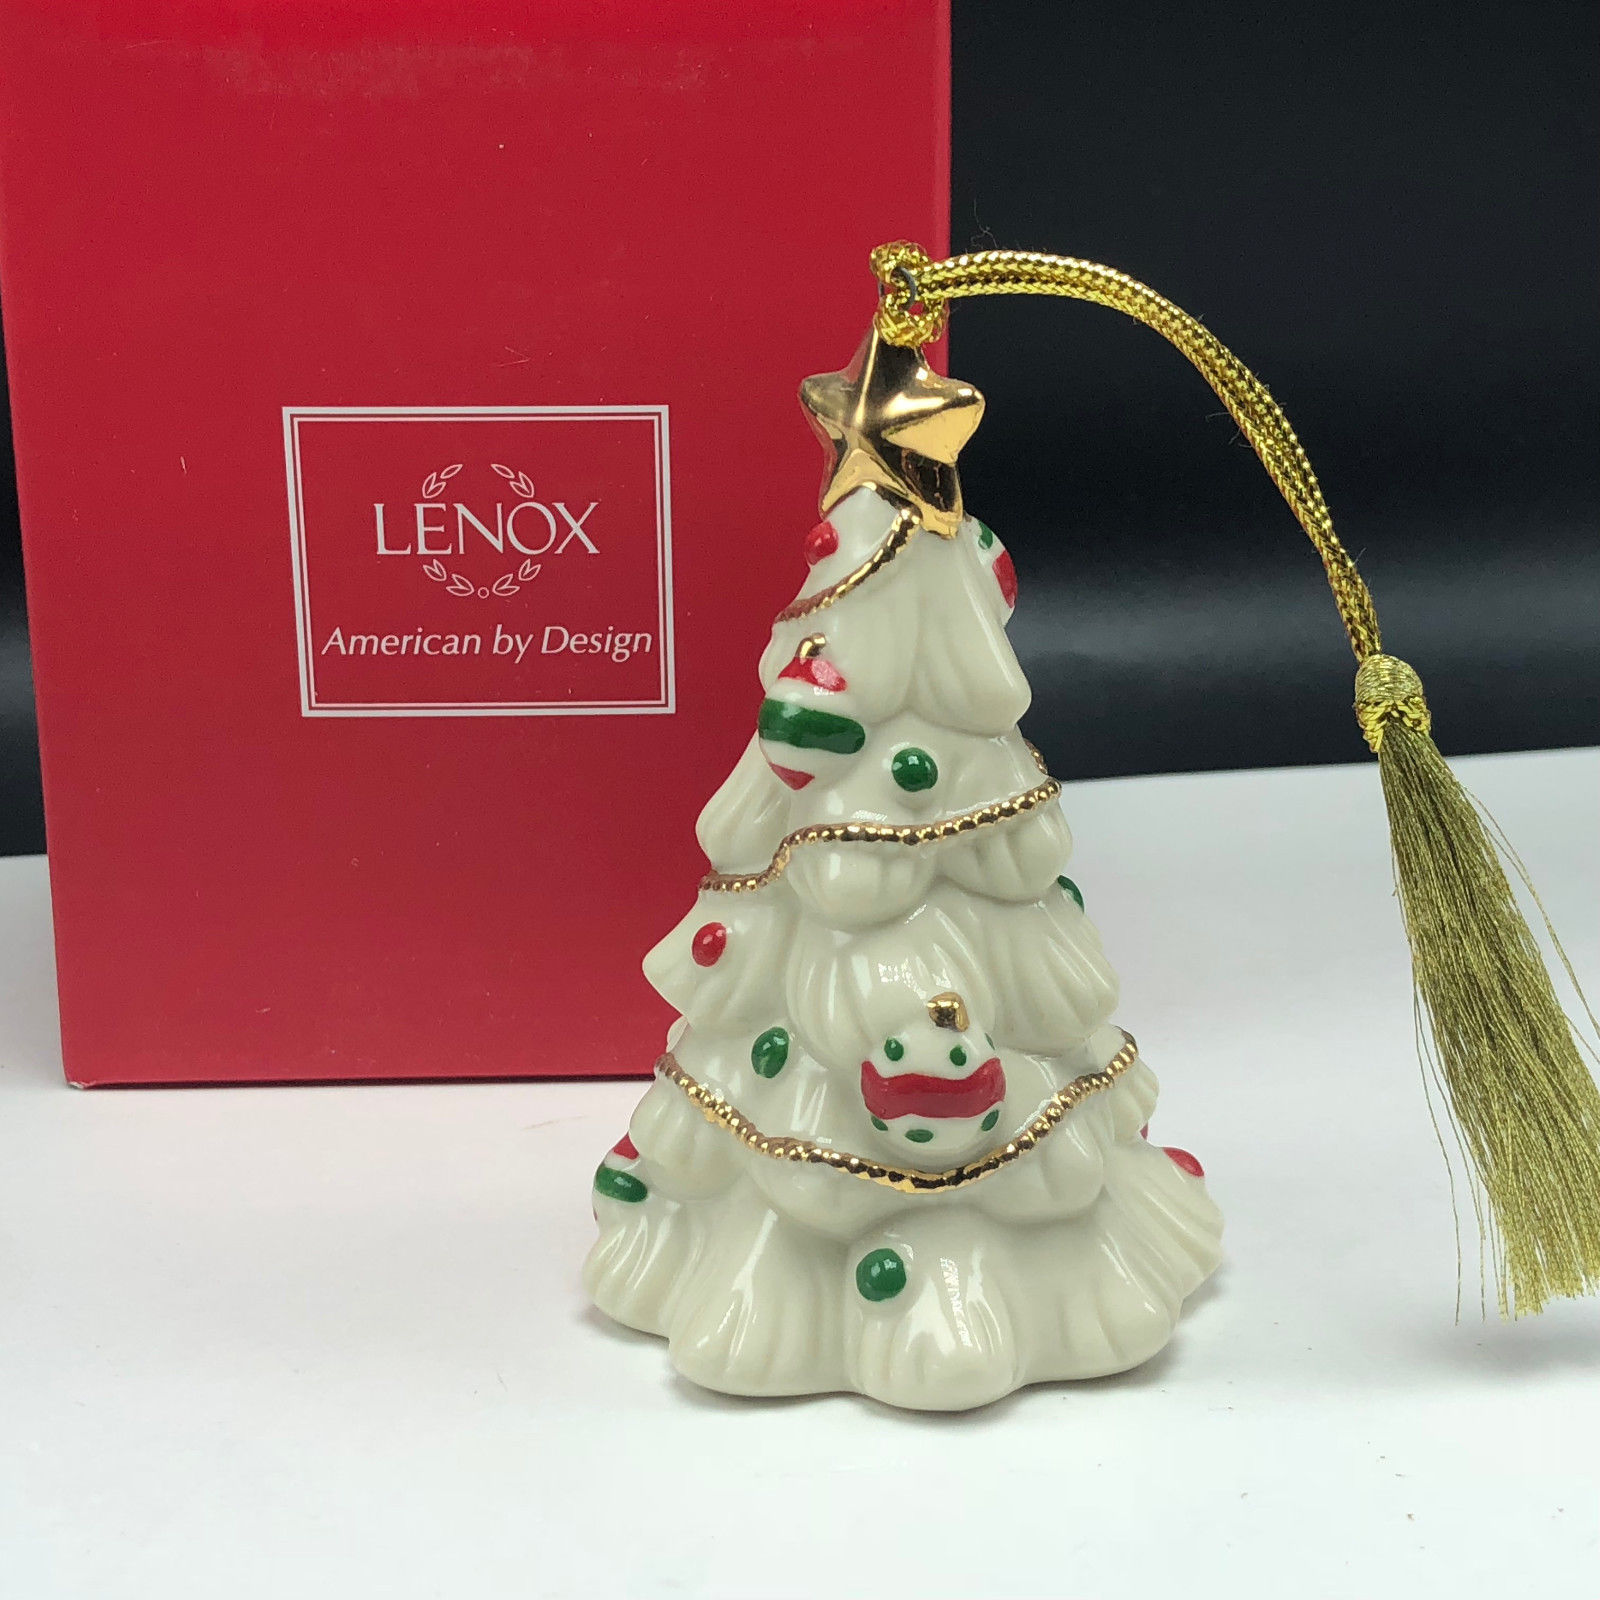 LENOX CHRISTMAS ORNAMENT very merry porcelain nib box figurine Tree holiday star